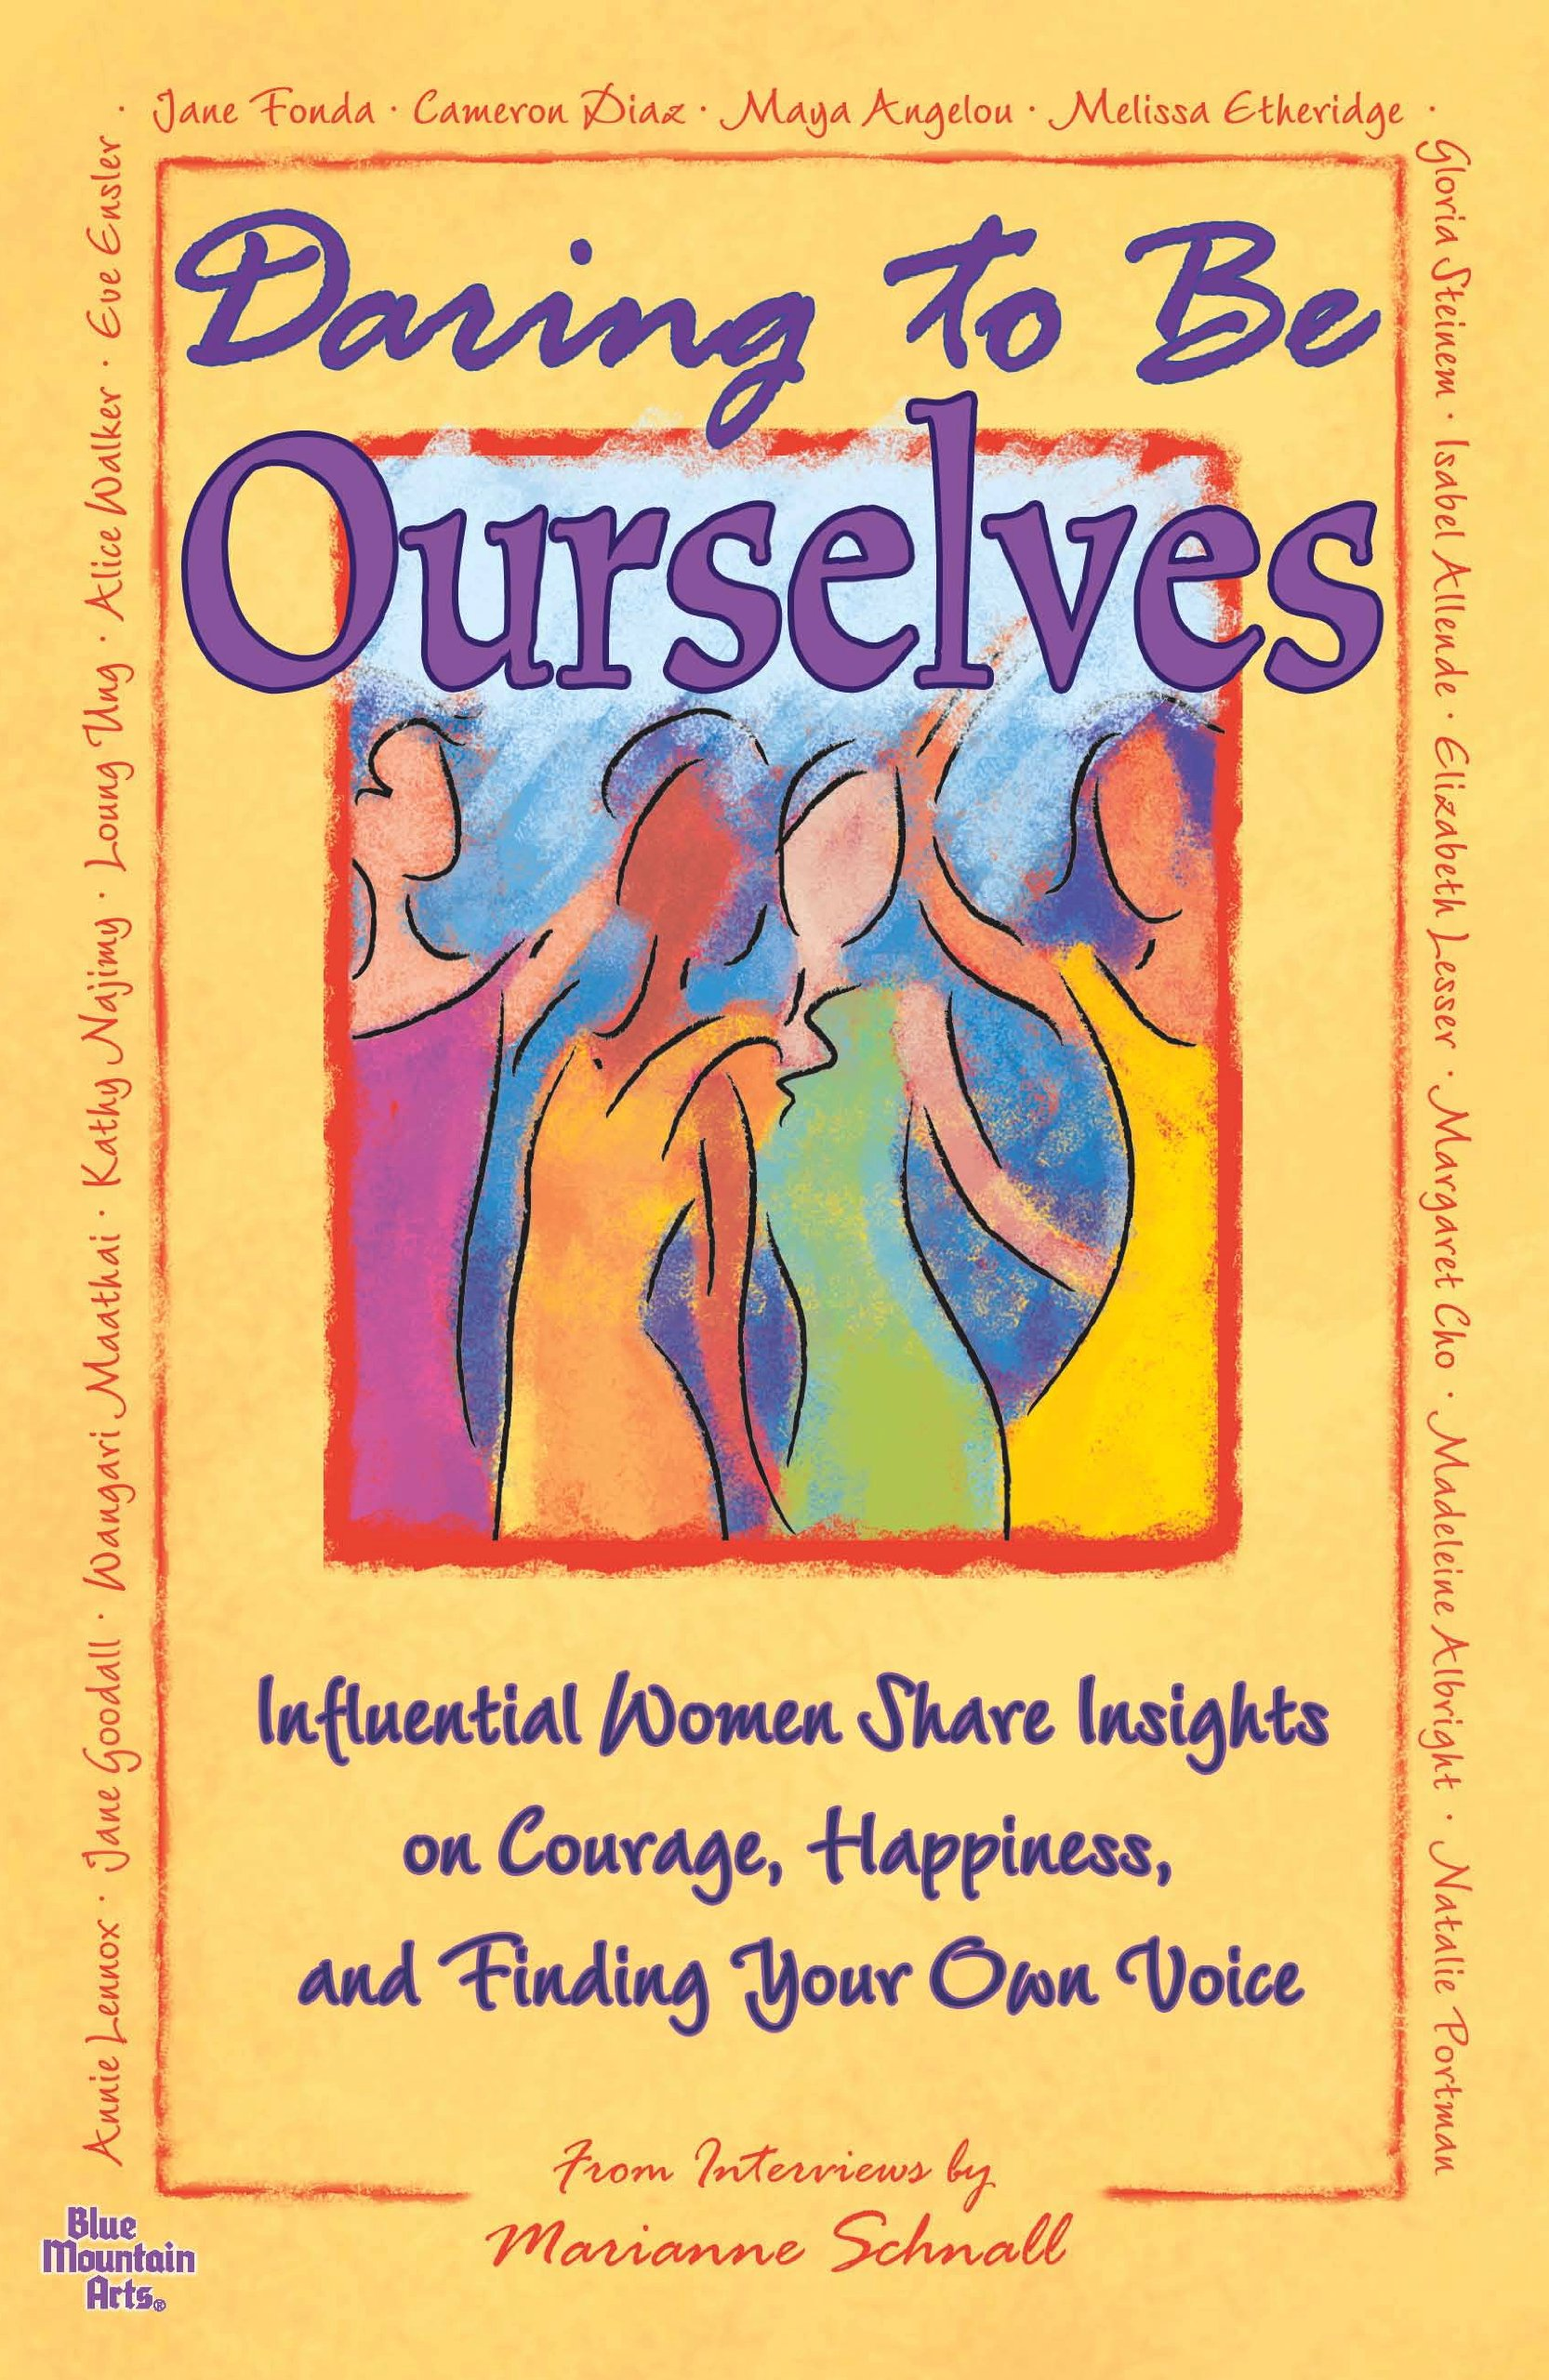 Download Daring to Be Ourselves:Influential Women Share Insights on Courage, Happiness, and Finding Your Own Voice pdf